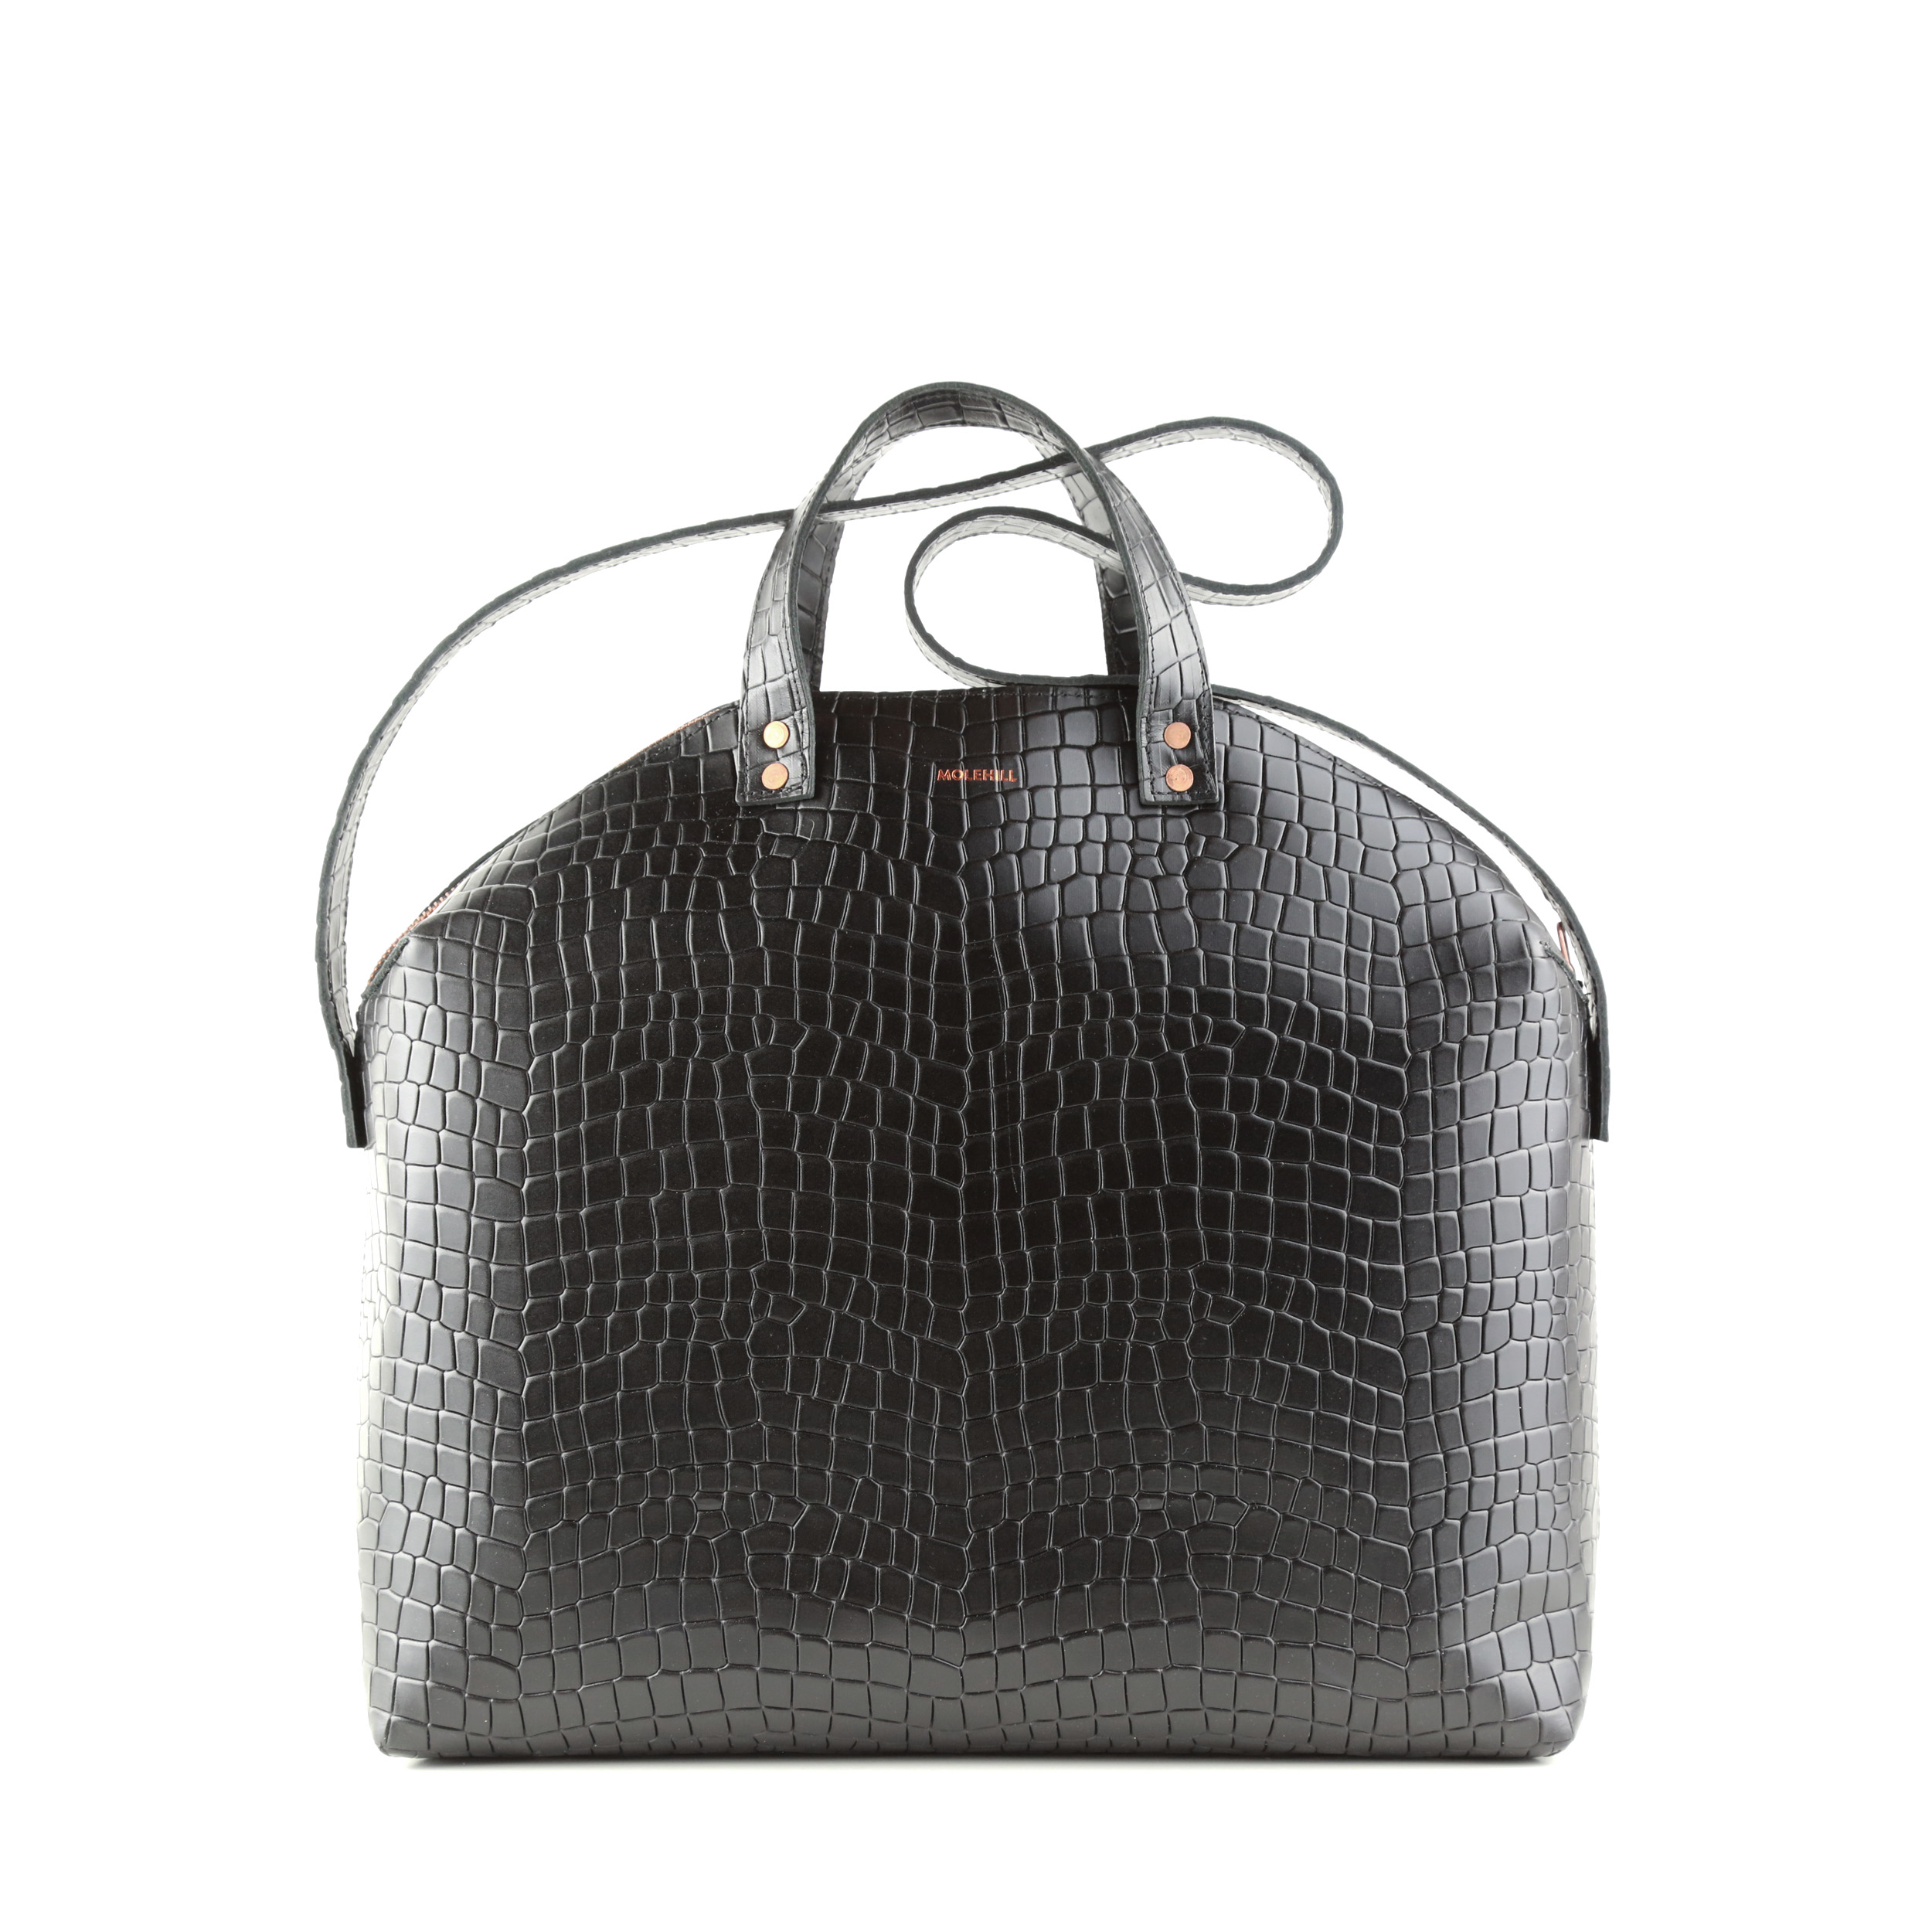 Torba-Madura-Handbag-Croco-Black-Sample-Sale-2